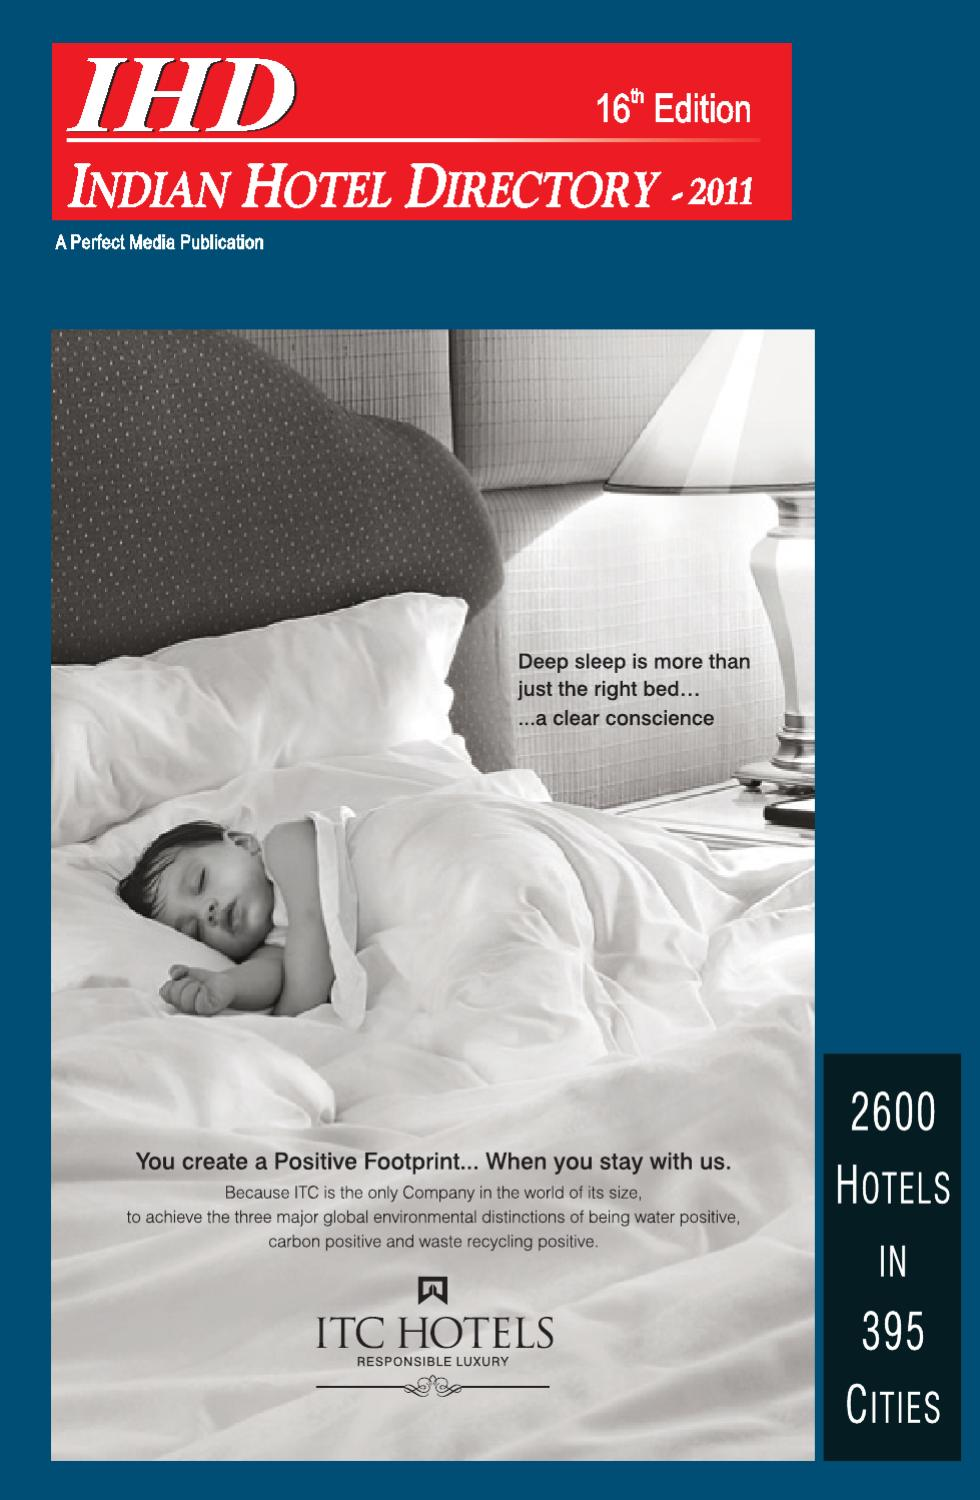 Indian Hotel Directory 2011 by Higher Education Directory - issuu